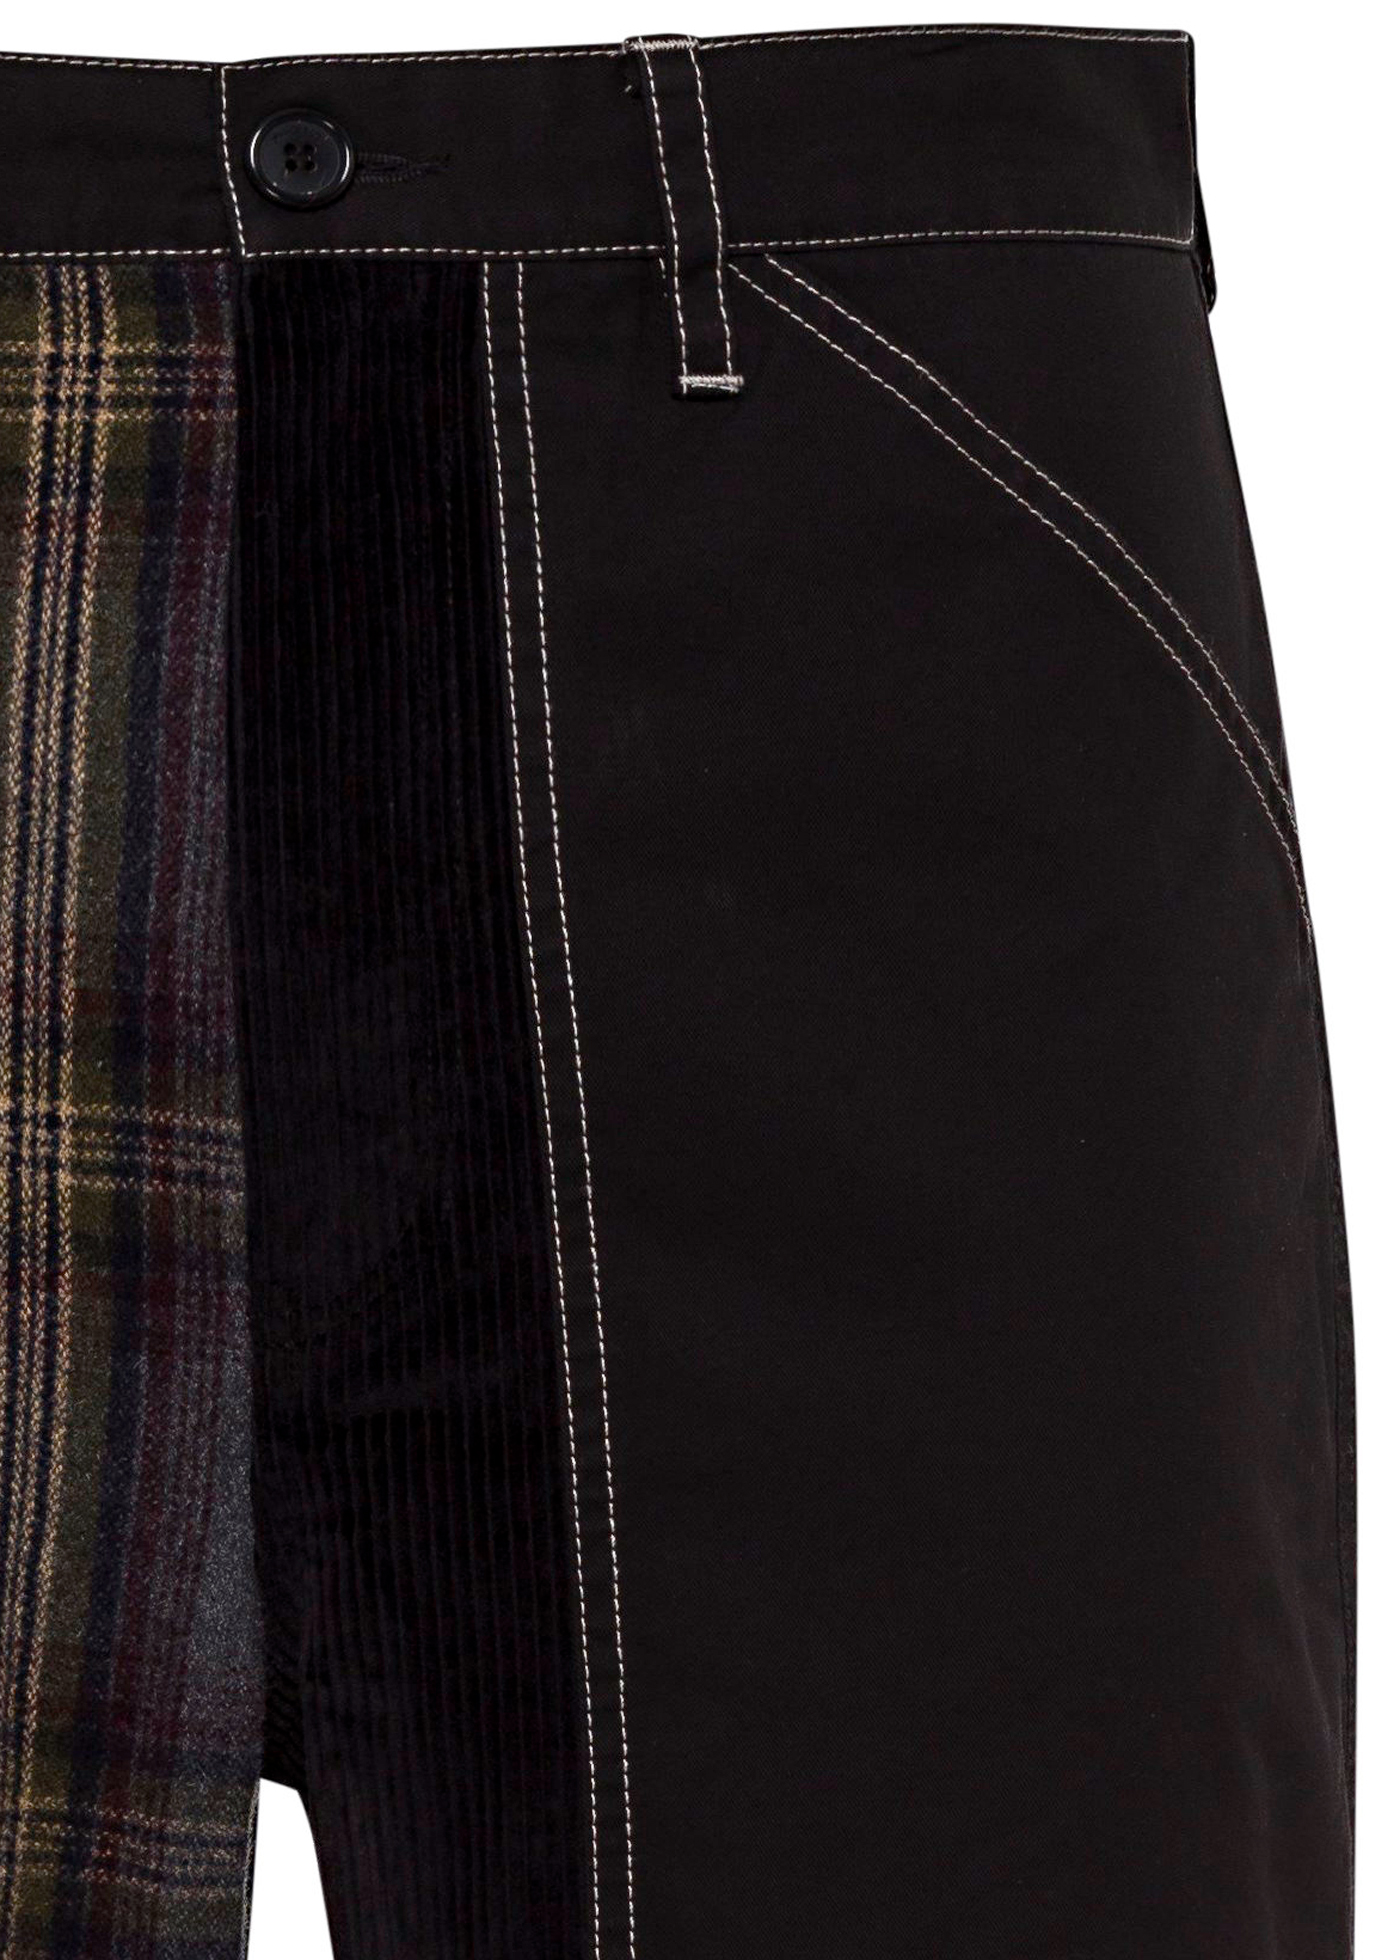 CROPPED PATCHWORK FATIGUE TROUSERS image number 2